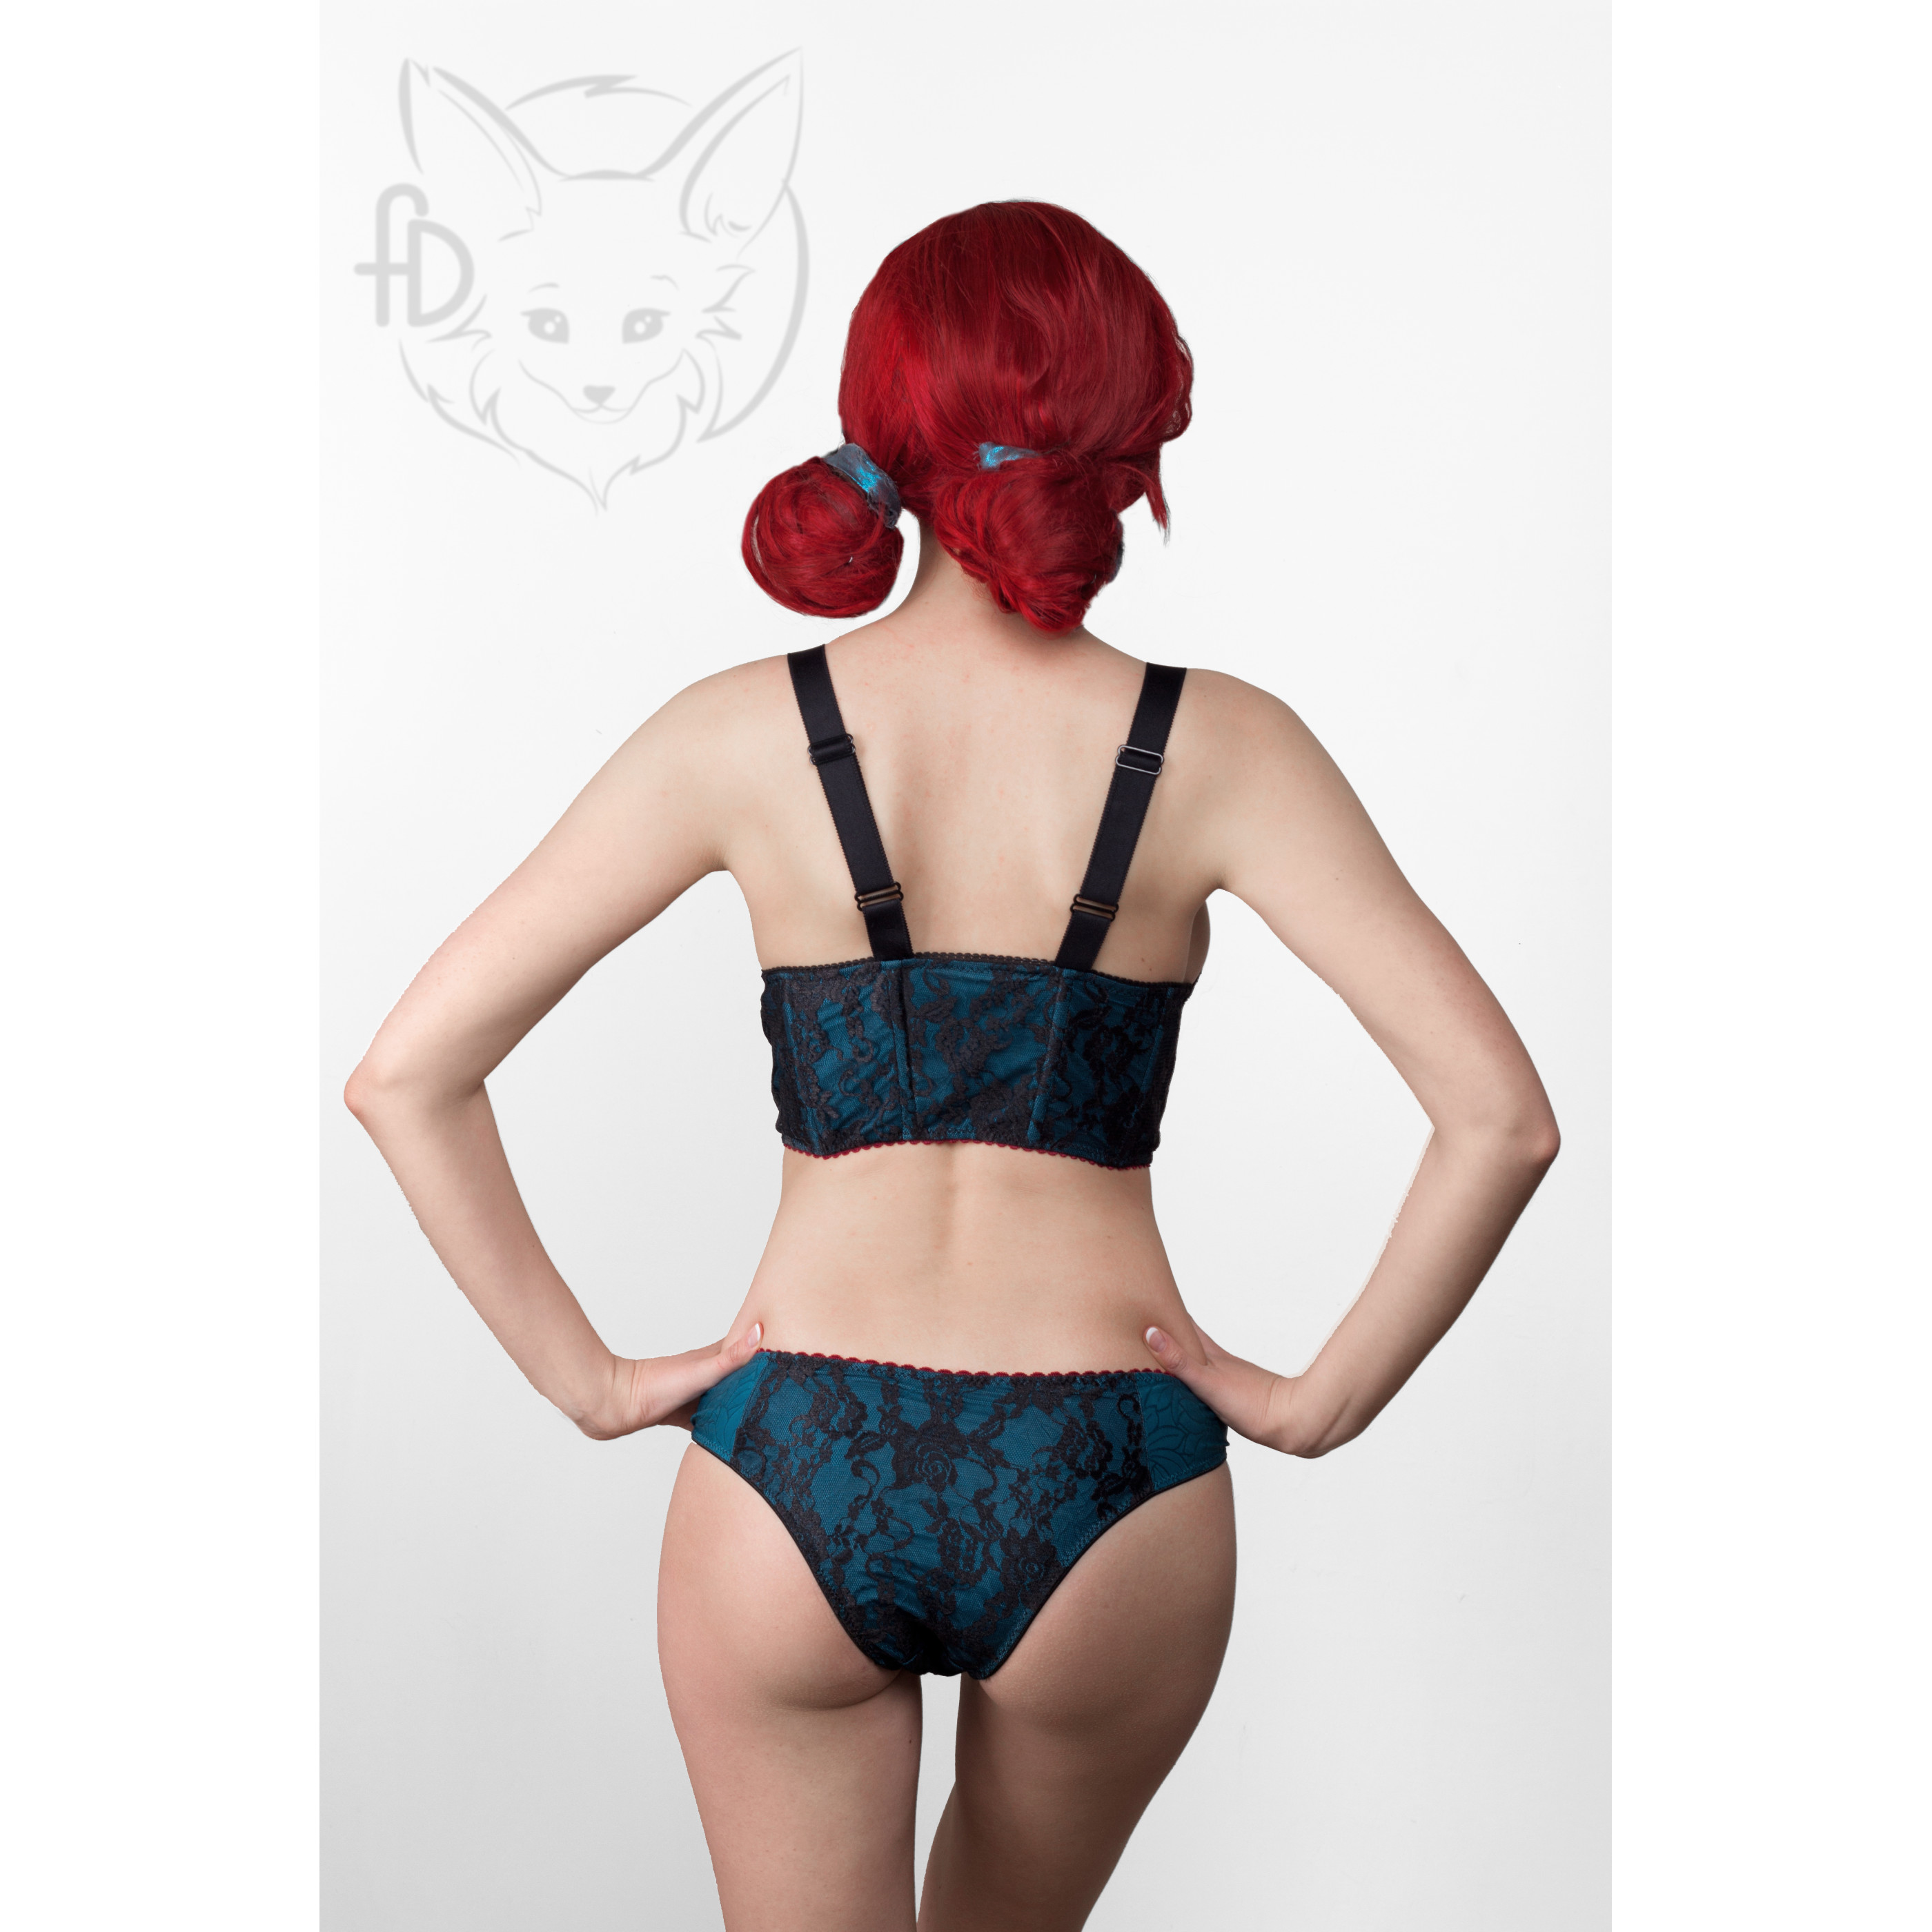 FD SHOP The Witcher 3: Wild Hunt Triss Merigold Lingerie